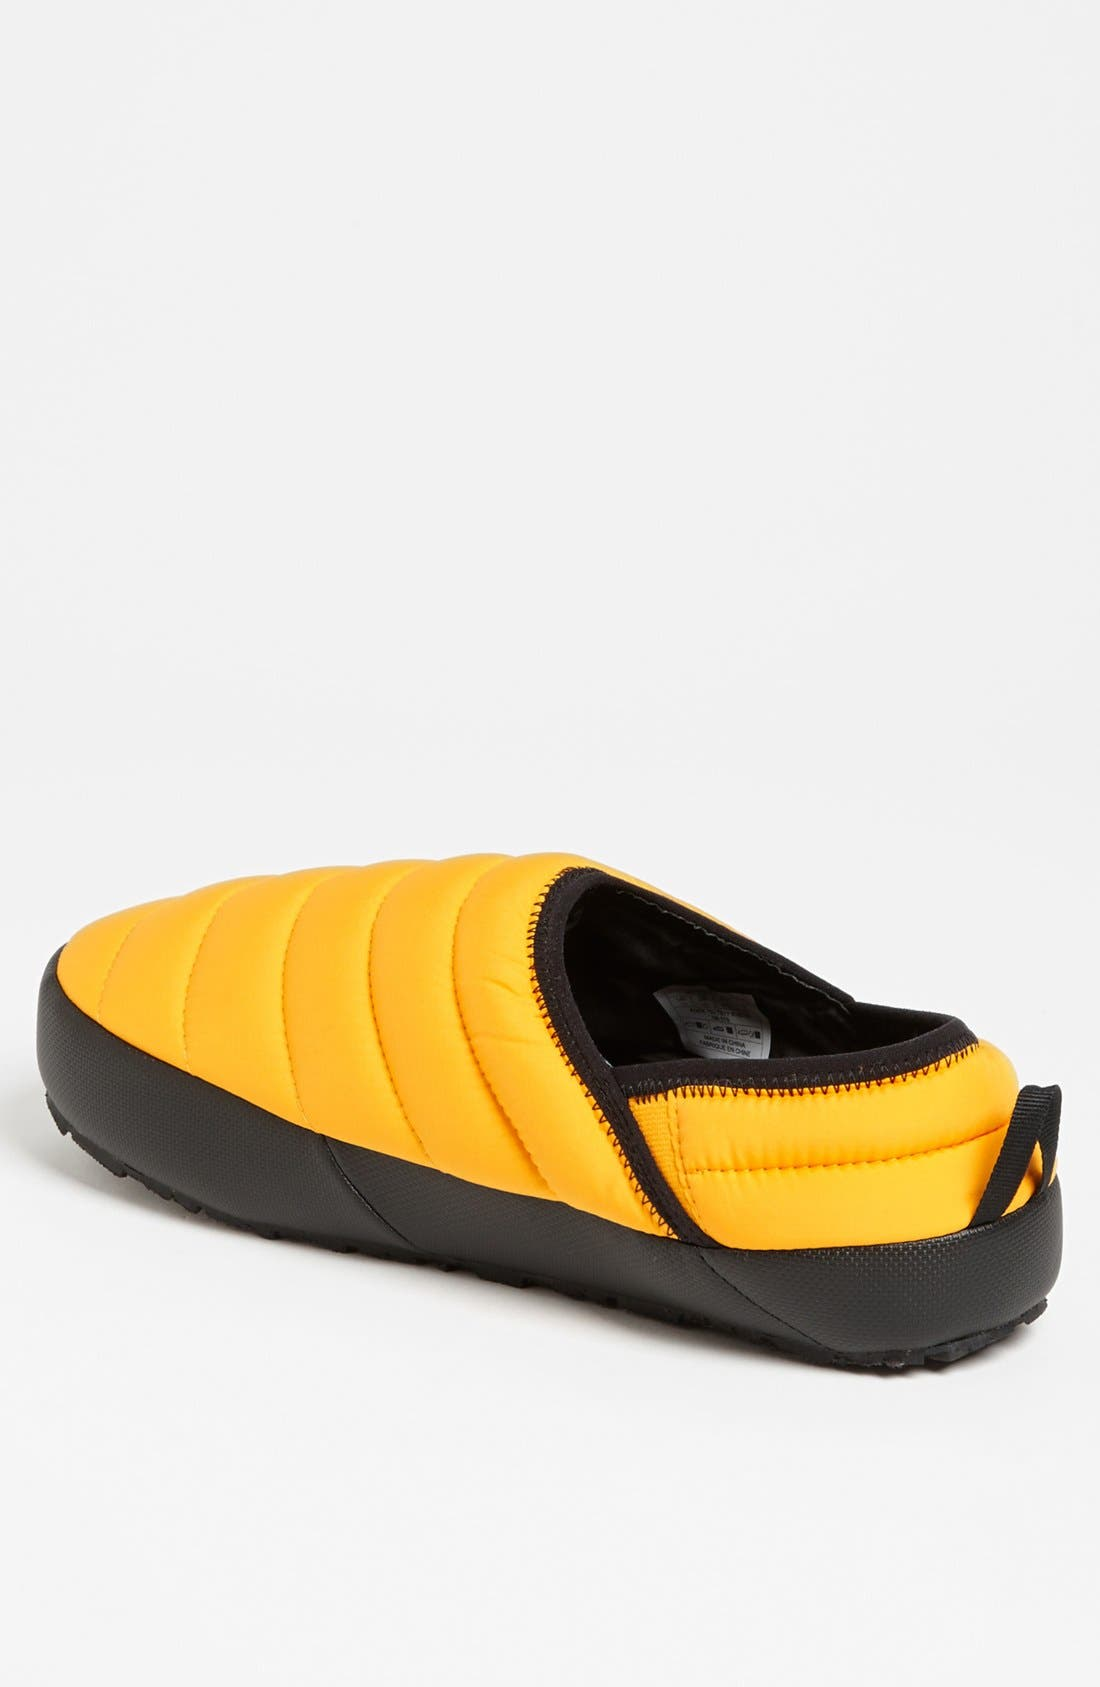 Alternate Image 2  - The North Face Traction Mule Slipper